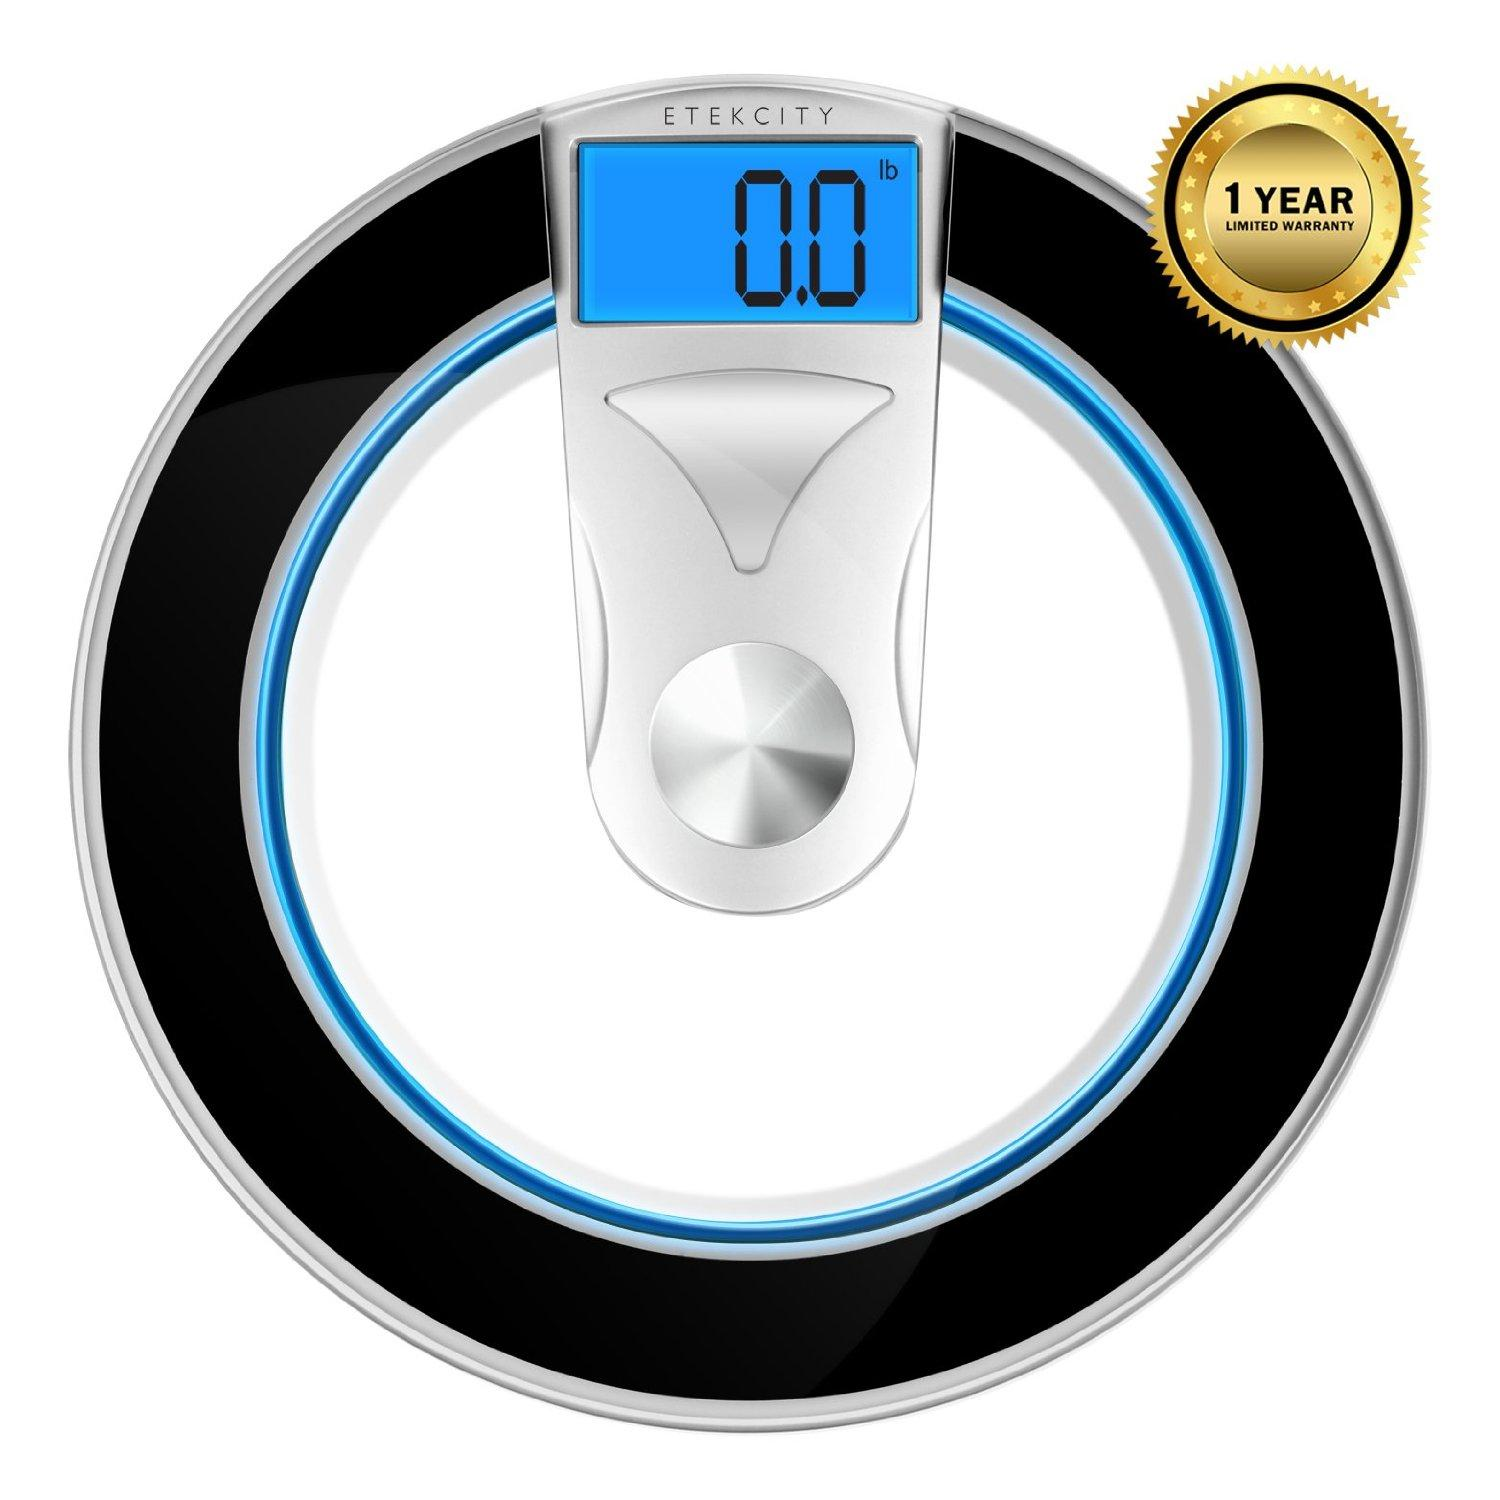 Etekcity 400lb /180kg Digital Bathroom Scale